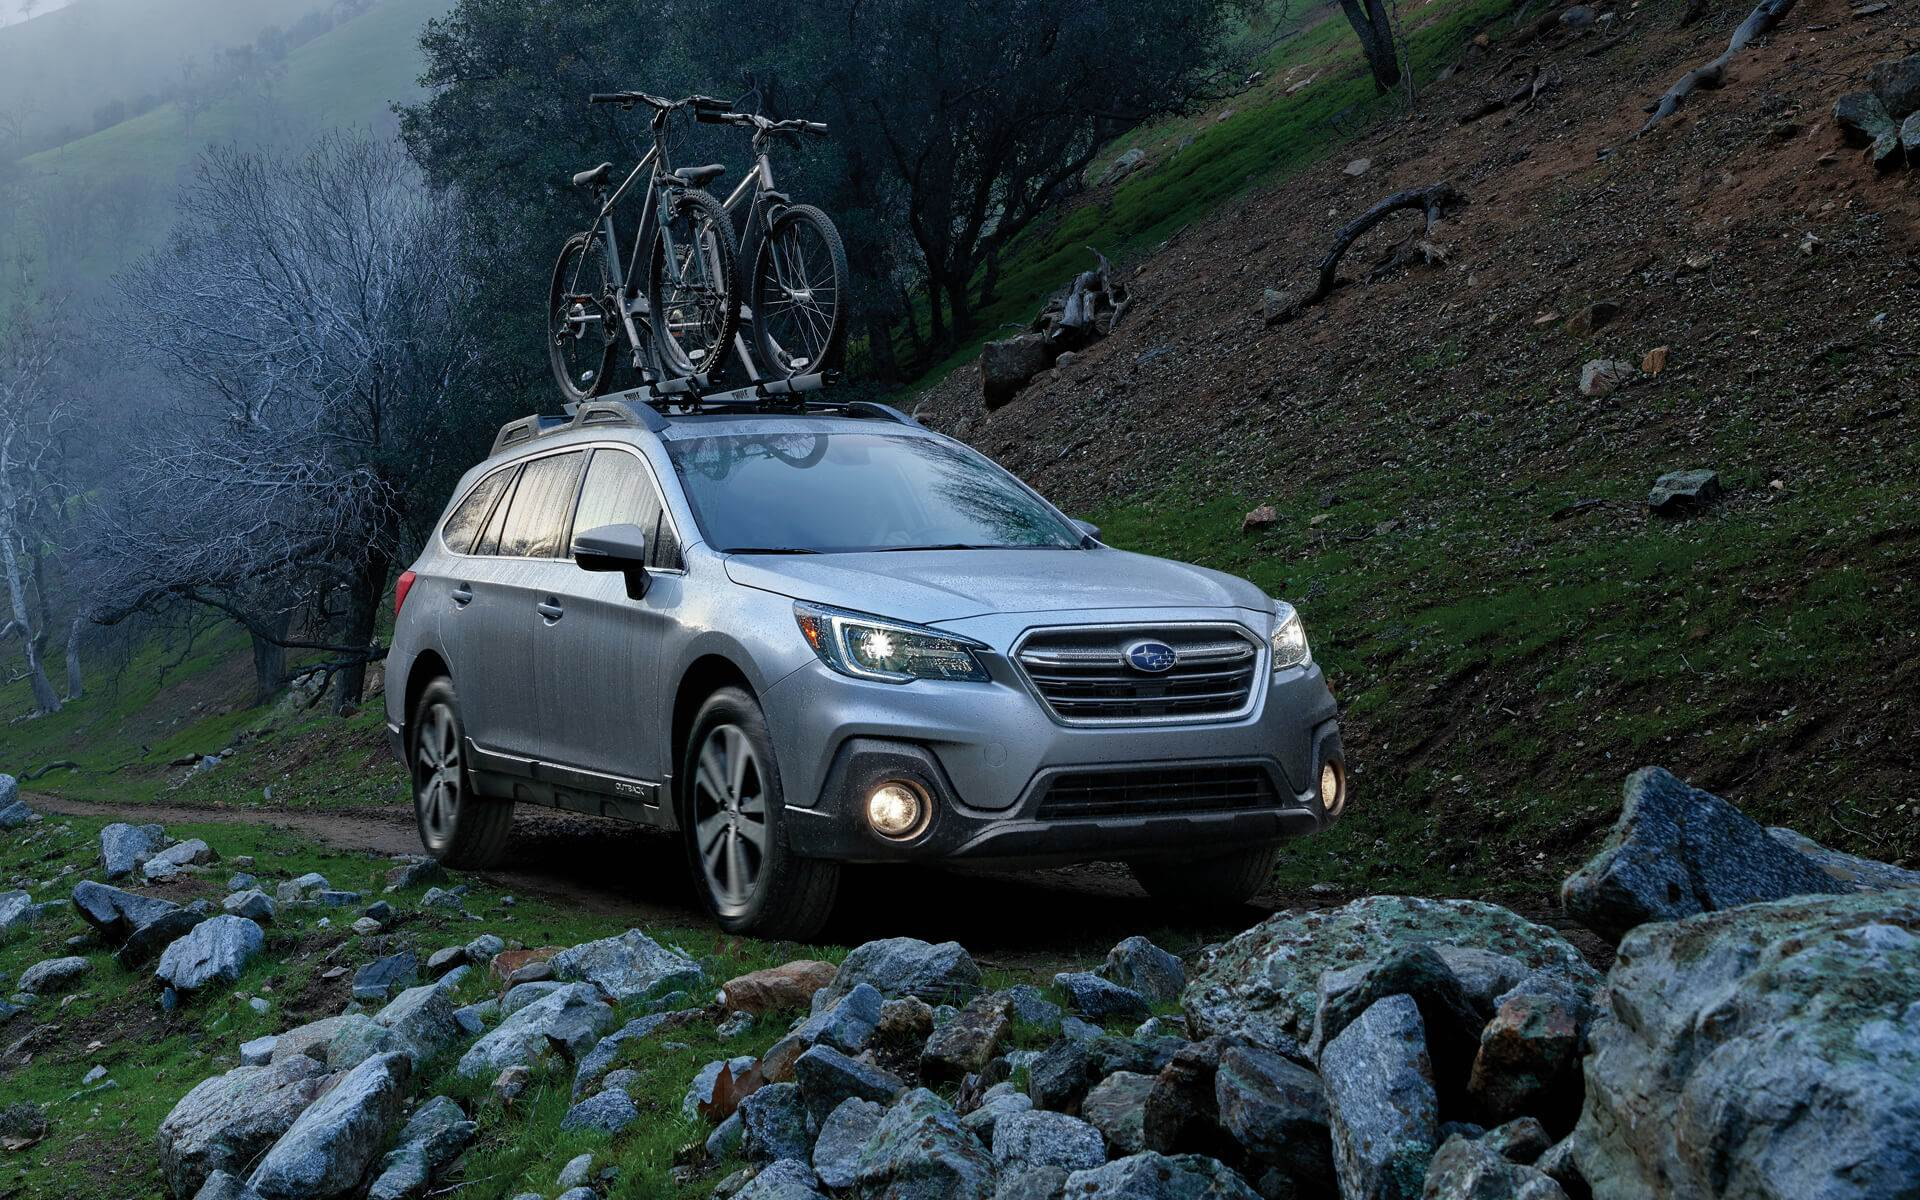 Used Subaru Outback for Sale in Boulder CO